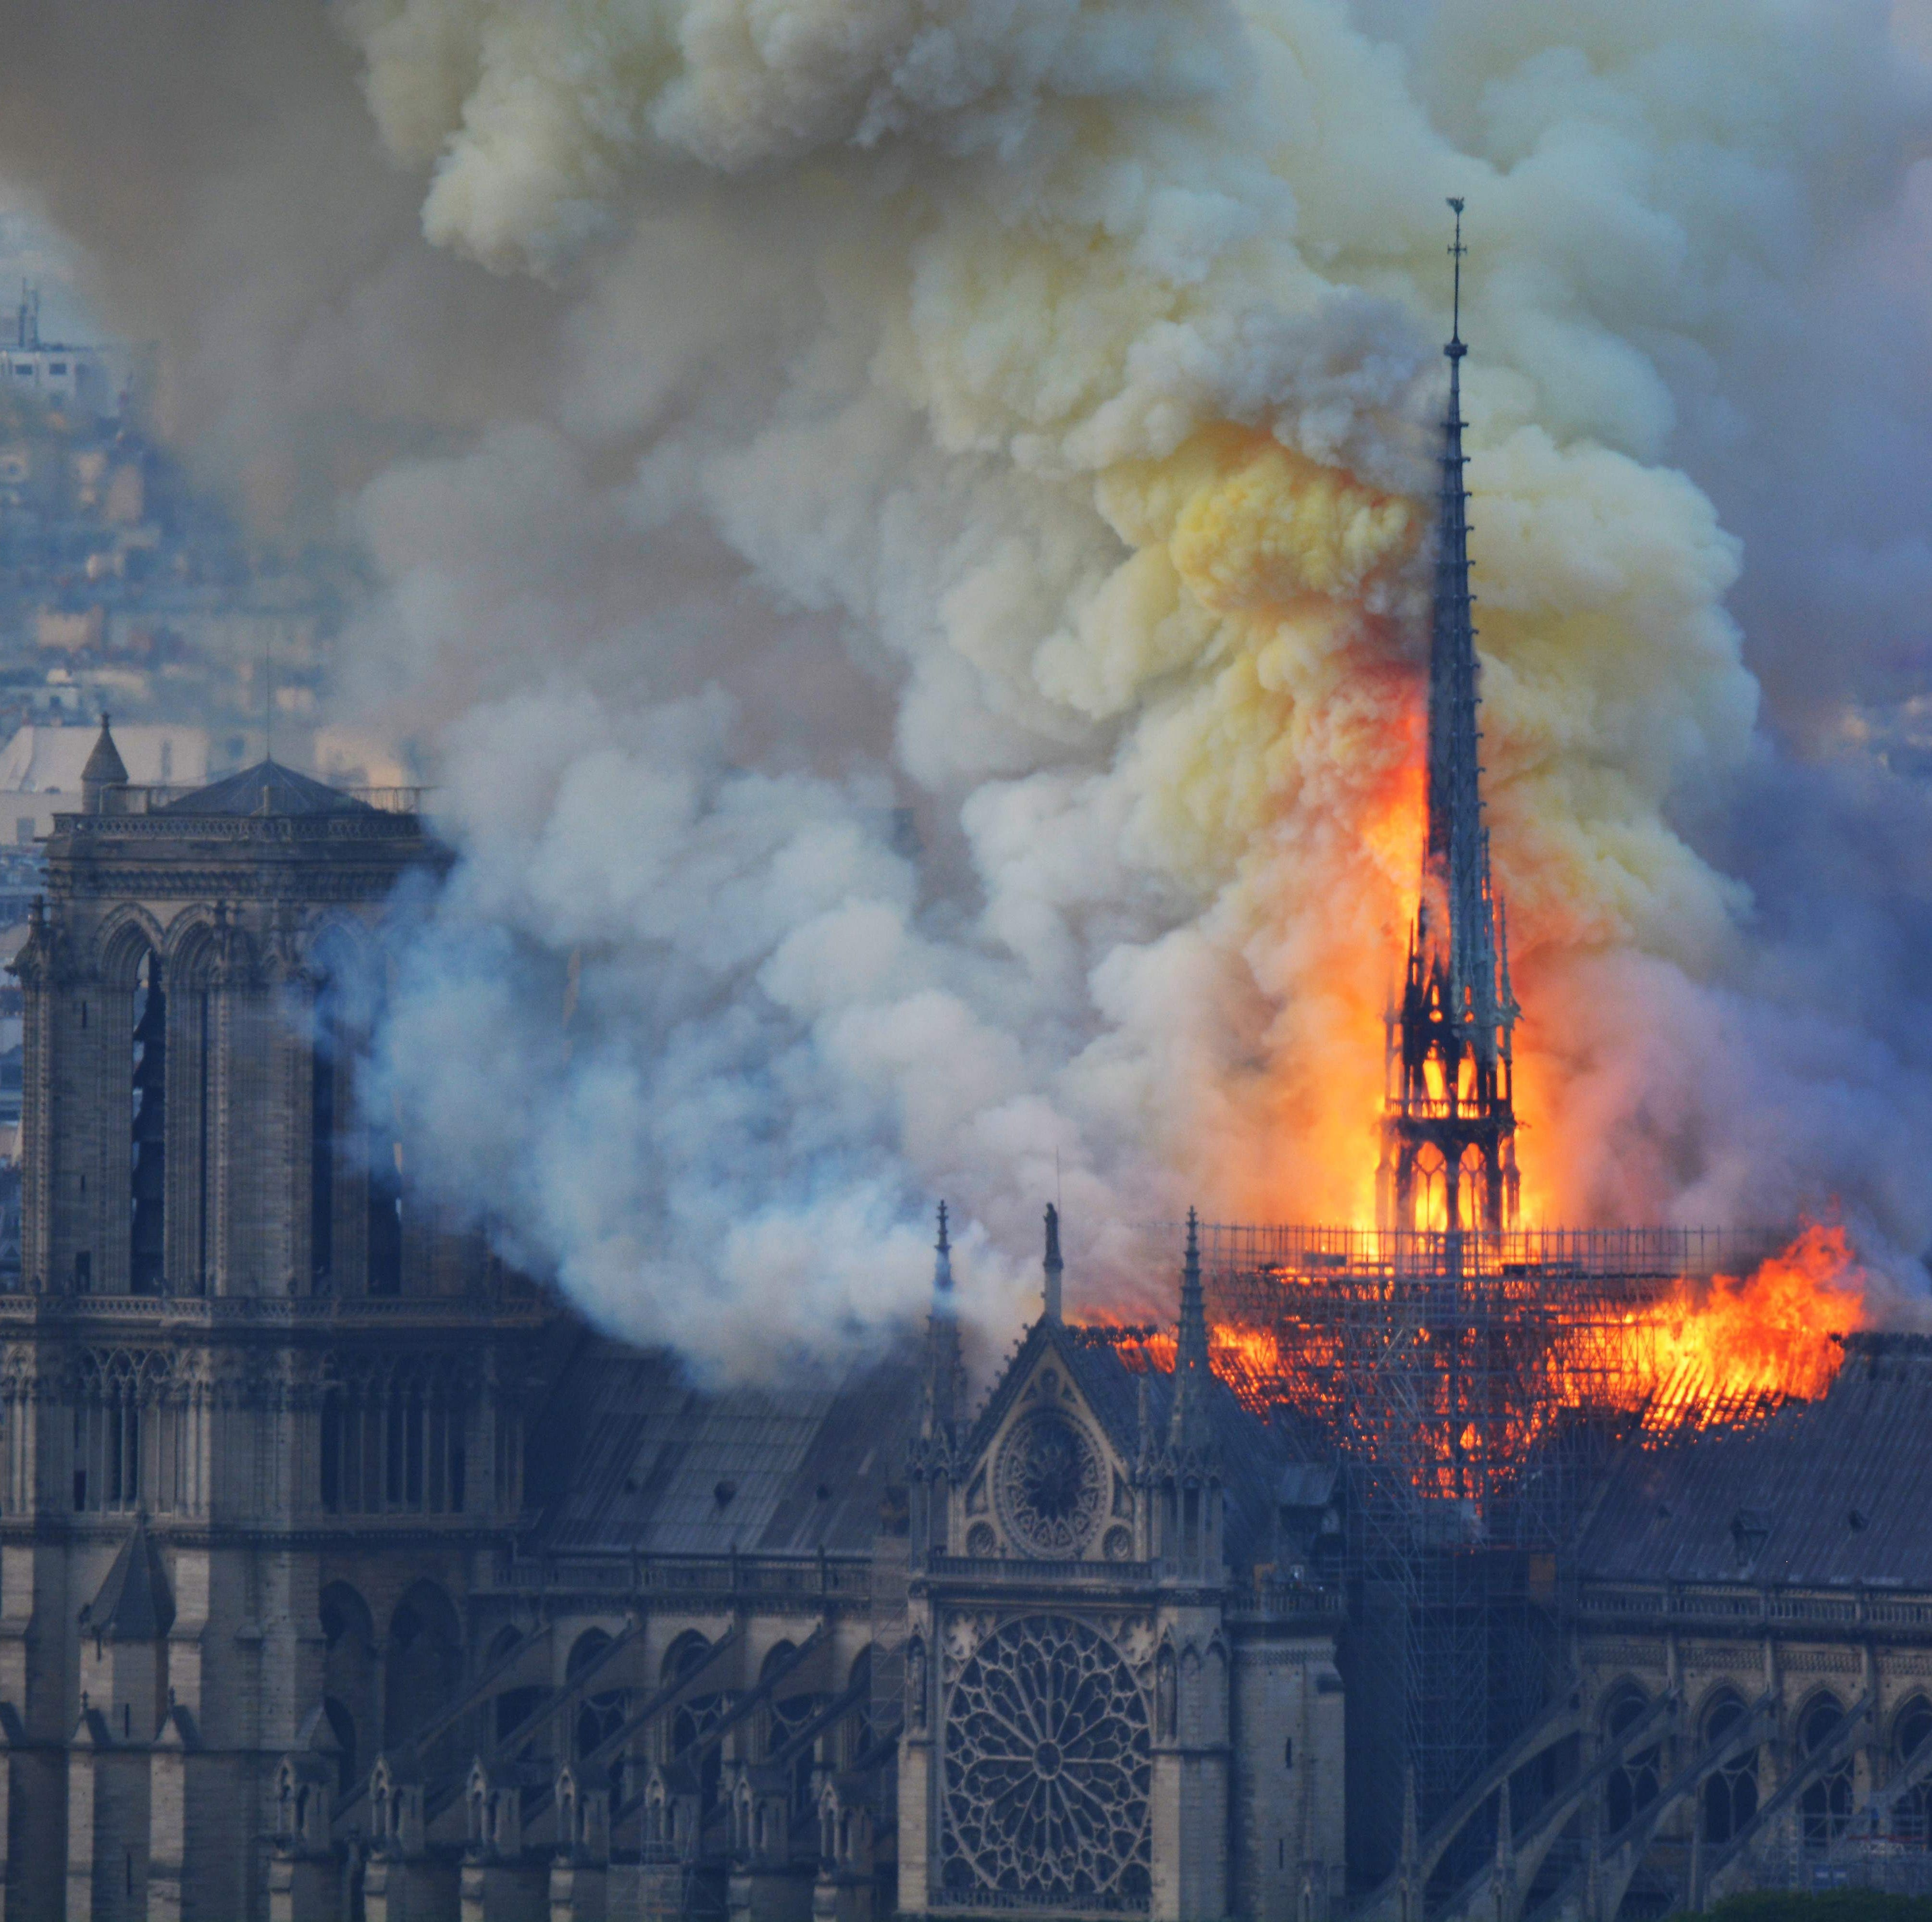 What was the meaning behind Cincinnati Democrat's Notre Dame Cathedral fire 'example of privilege' tweet?